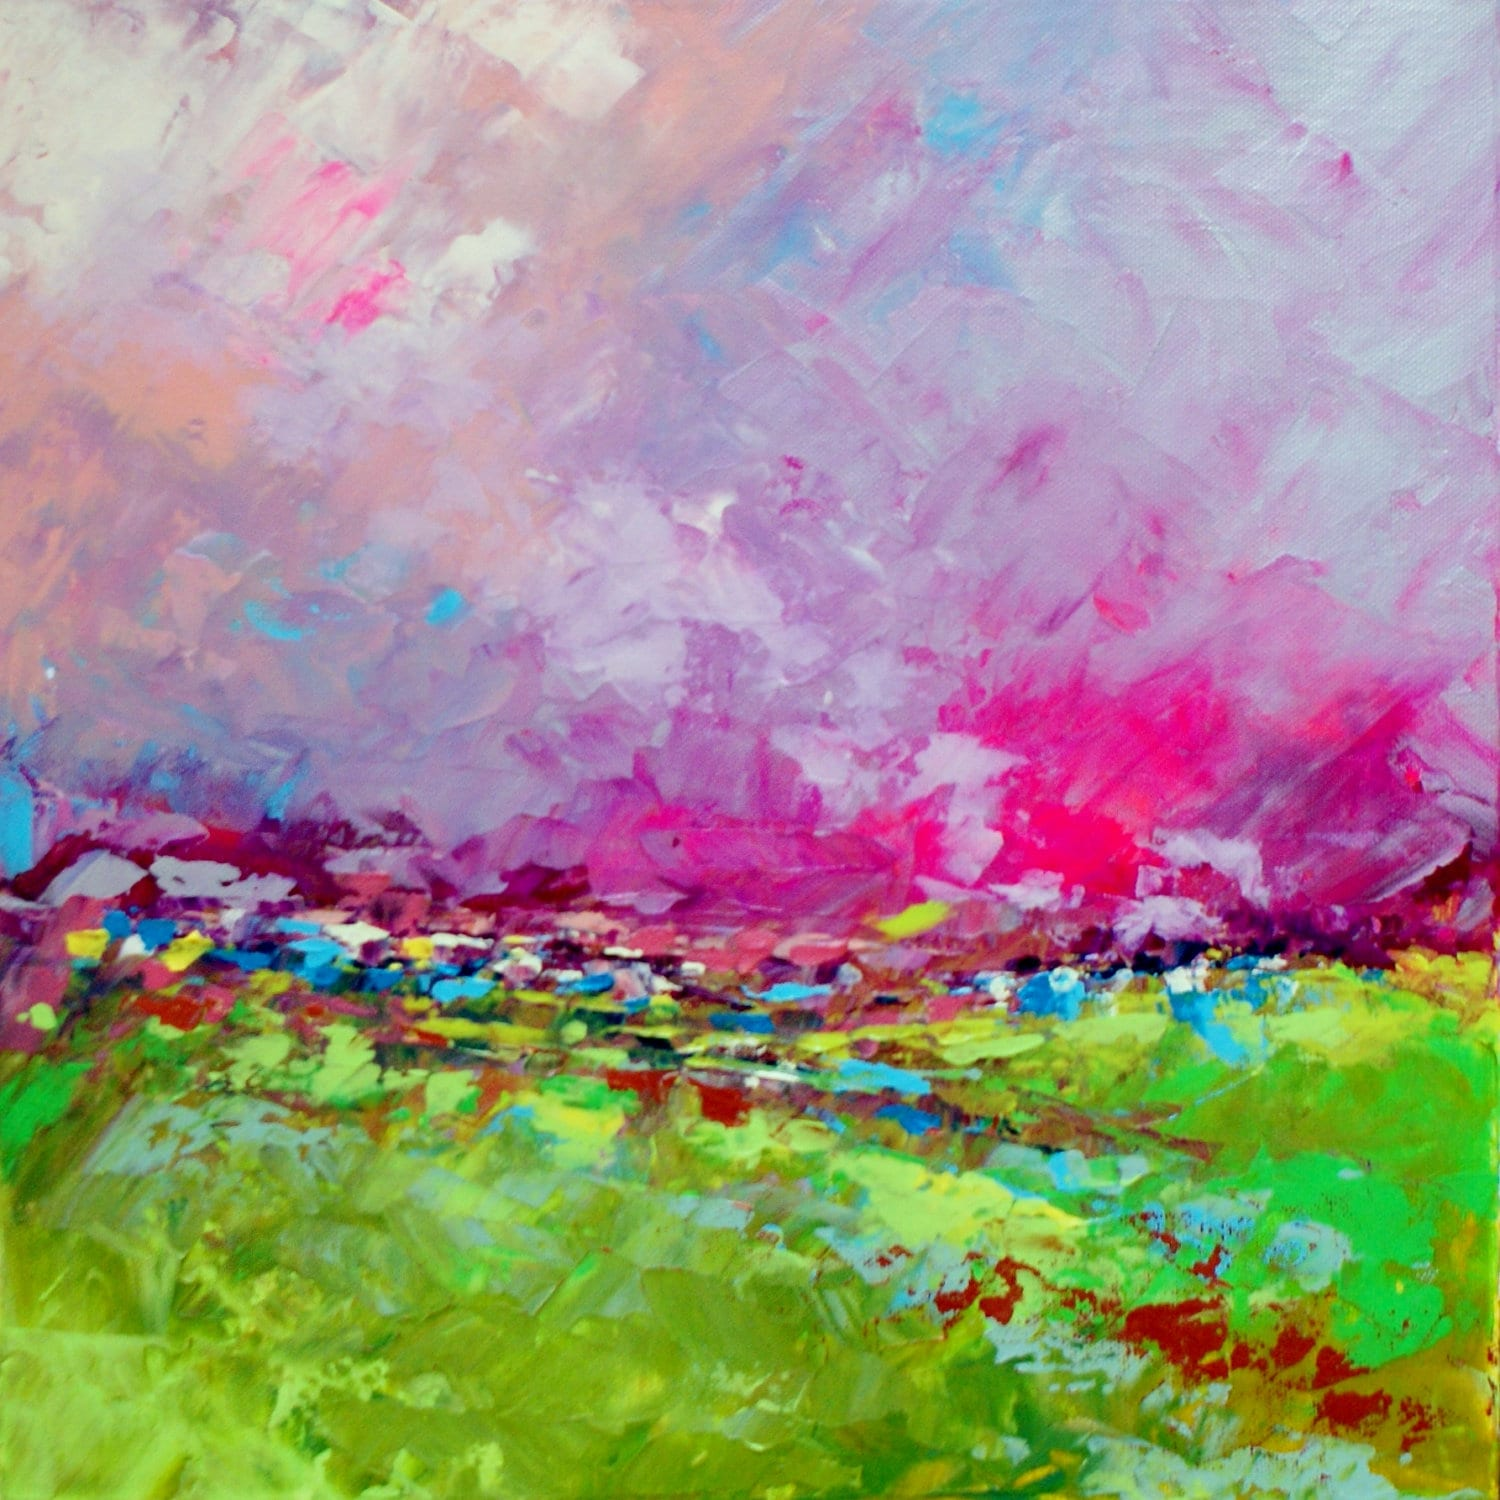 Abstract Landscape 'Remember Me' acrylic painting on